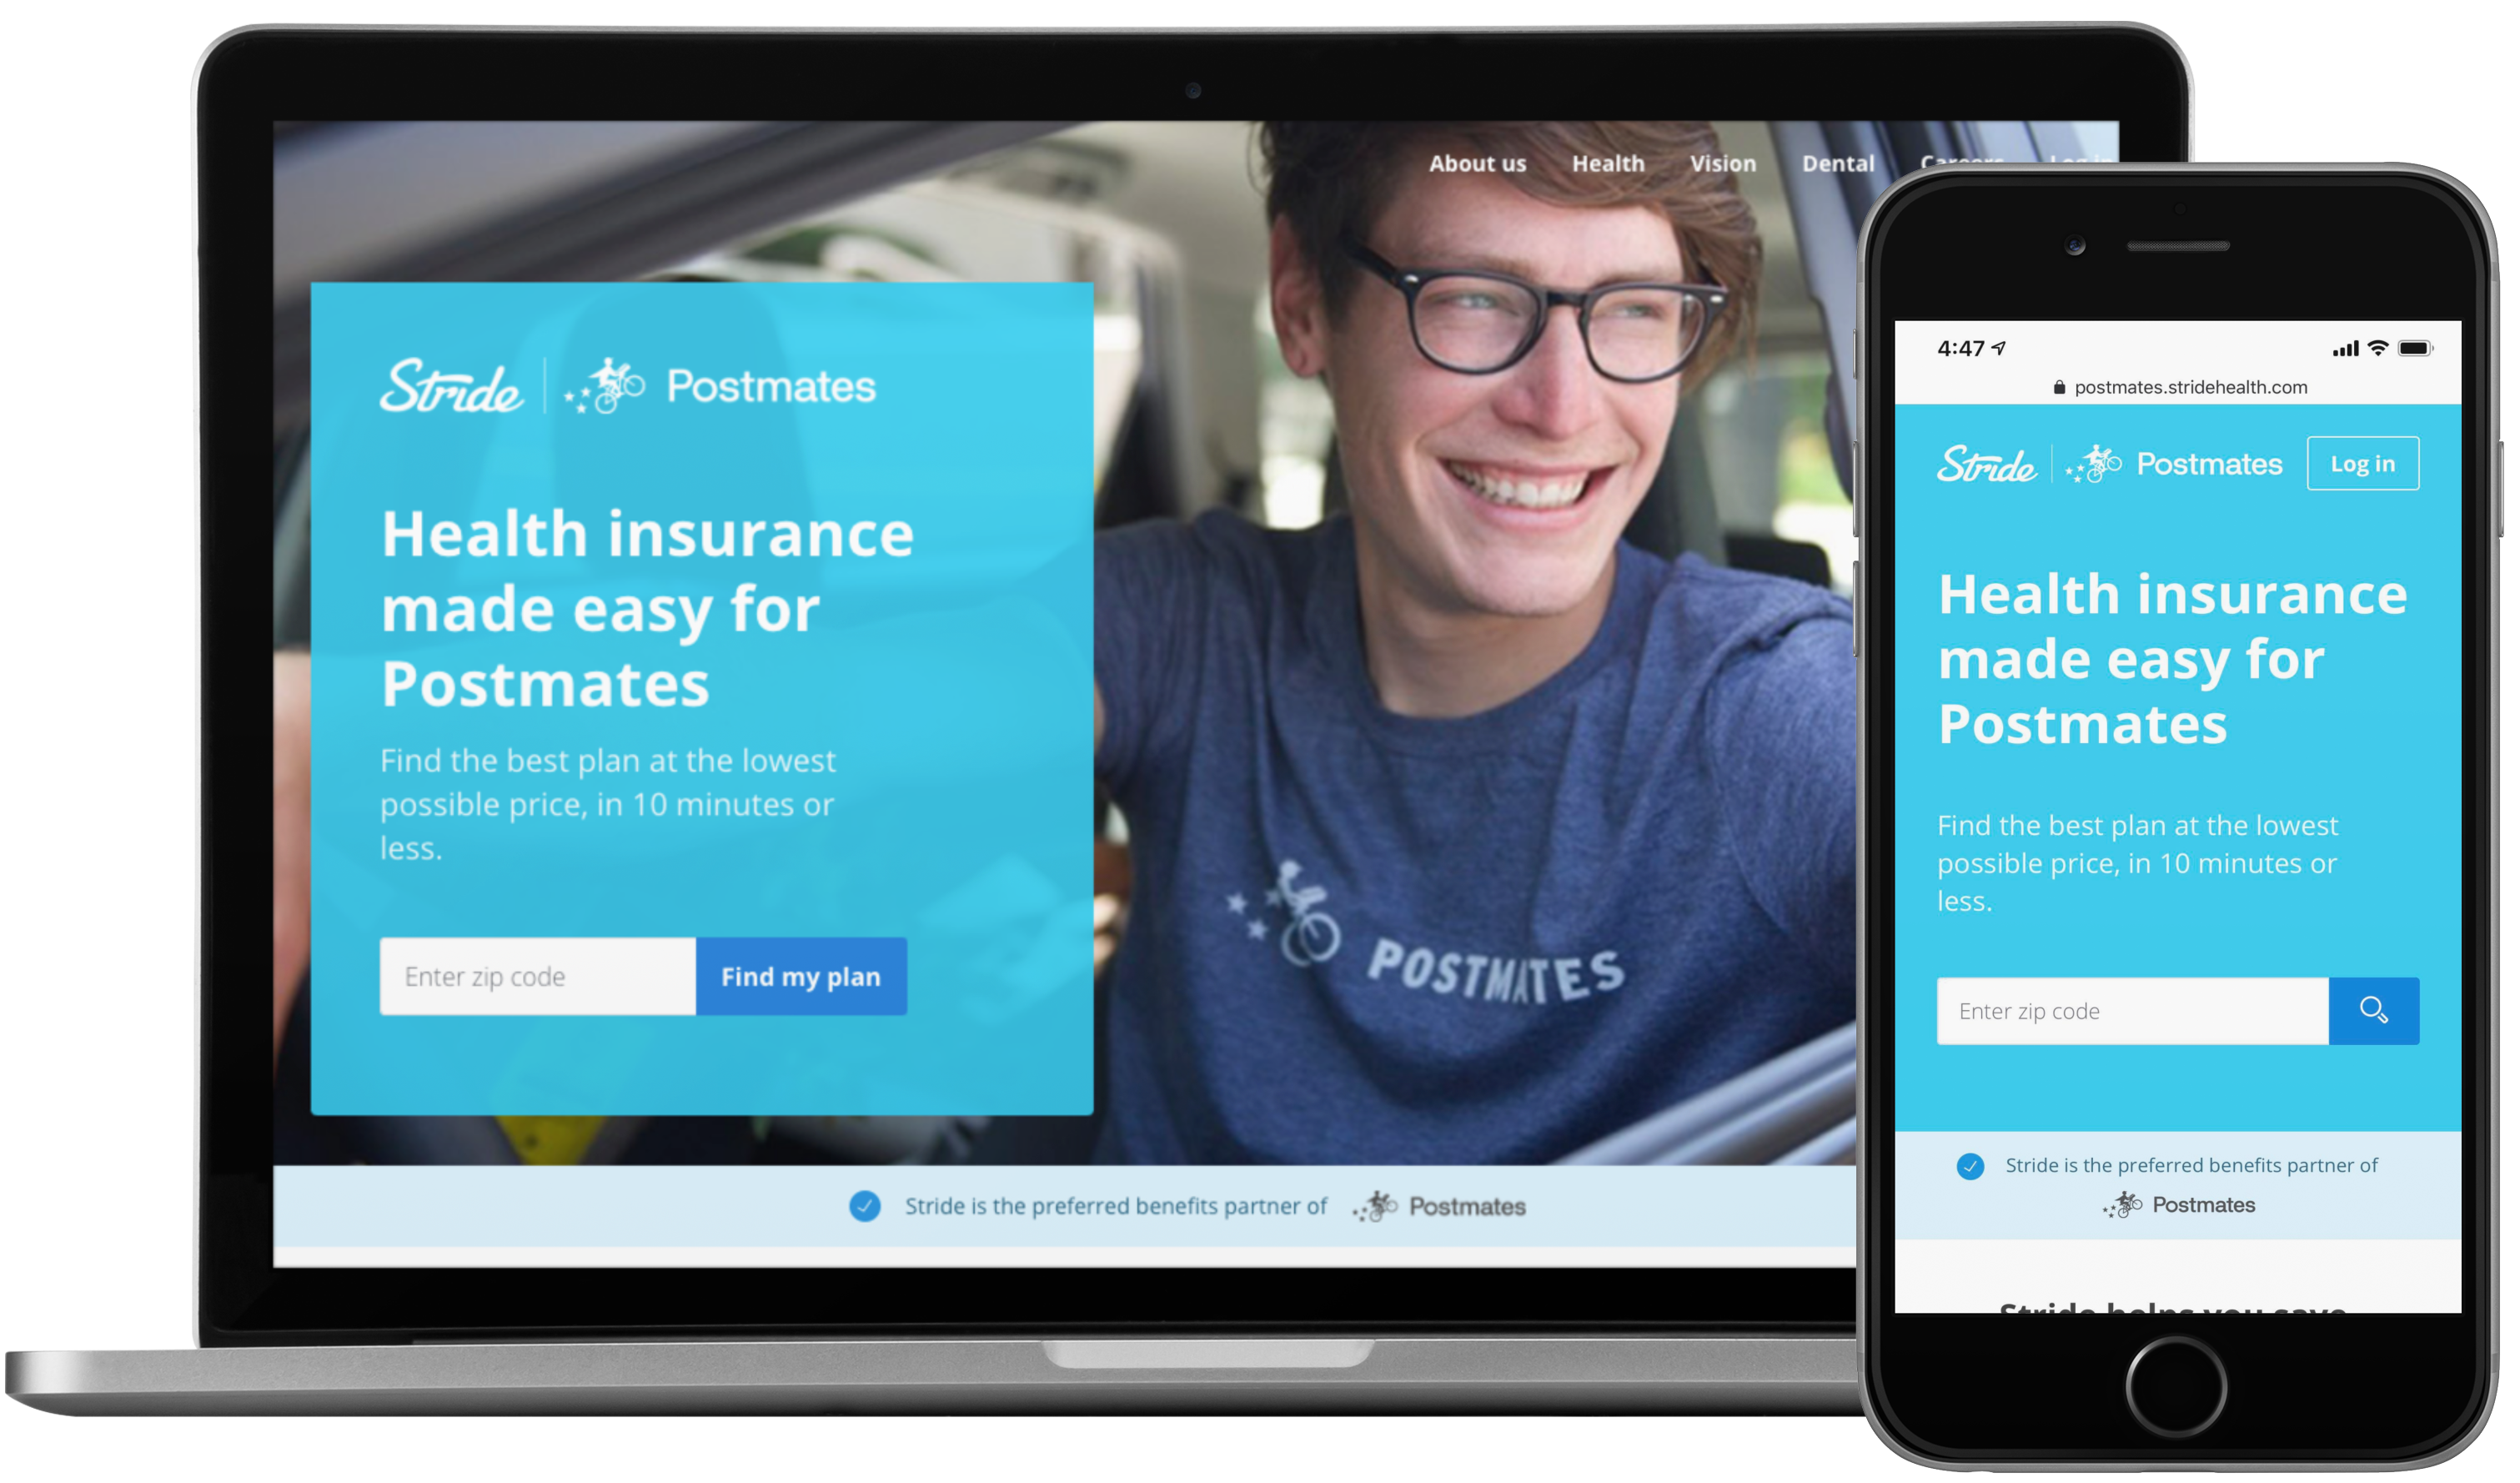 Stride Co-branded health insurance portal